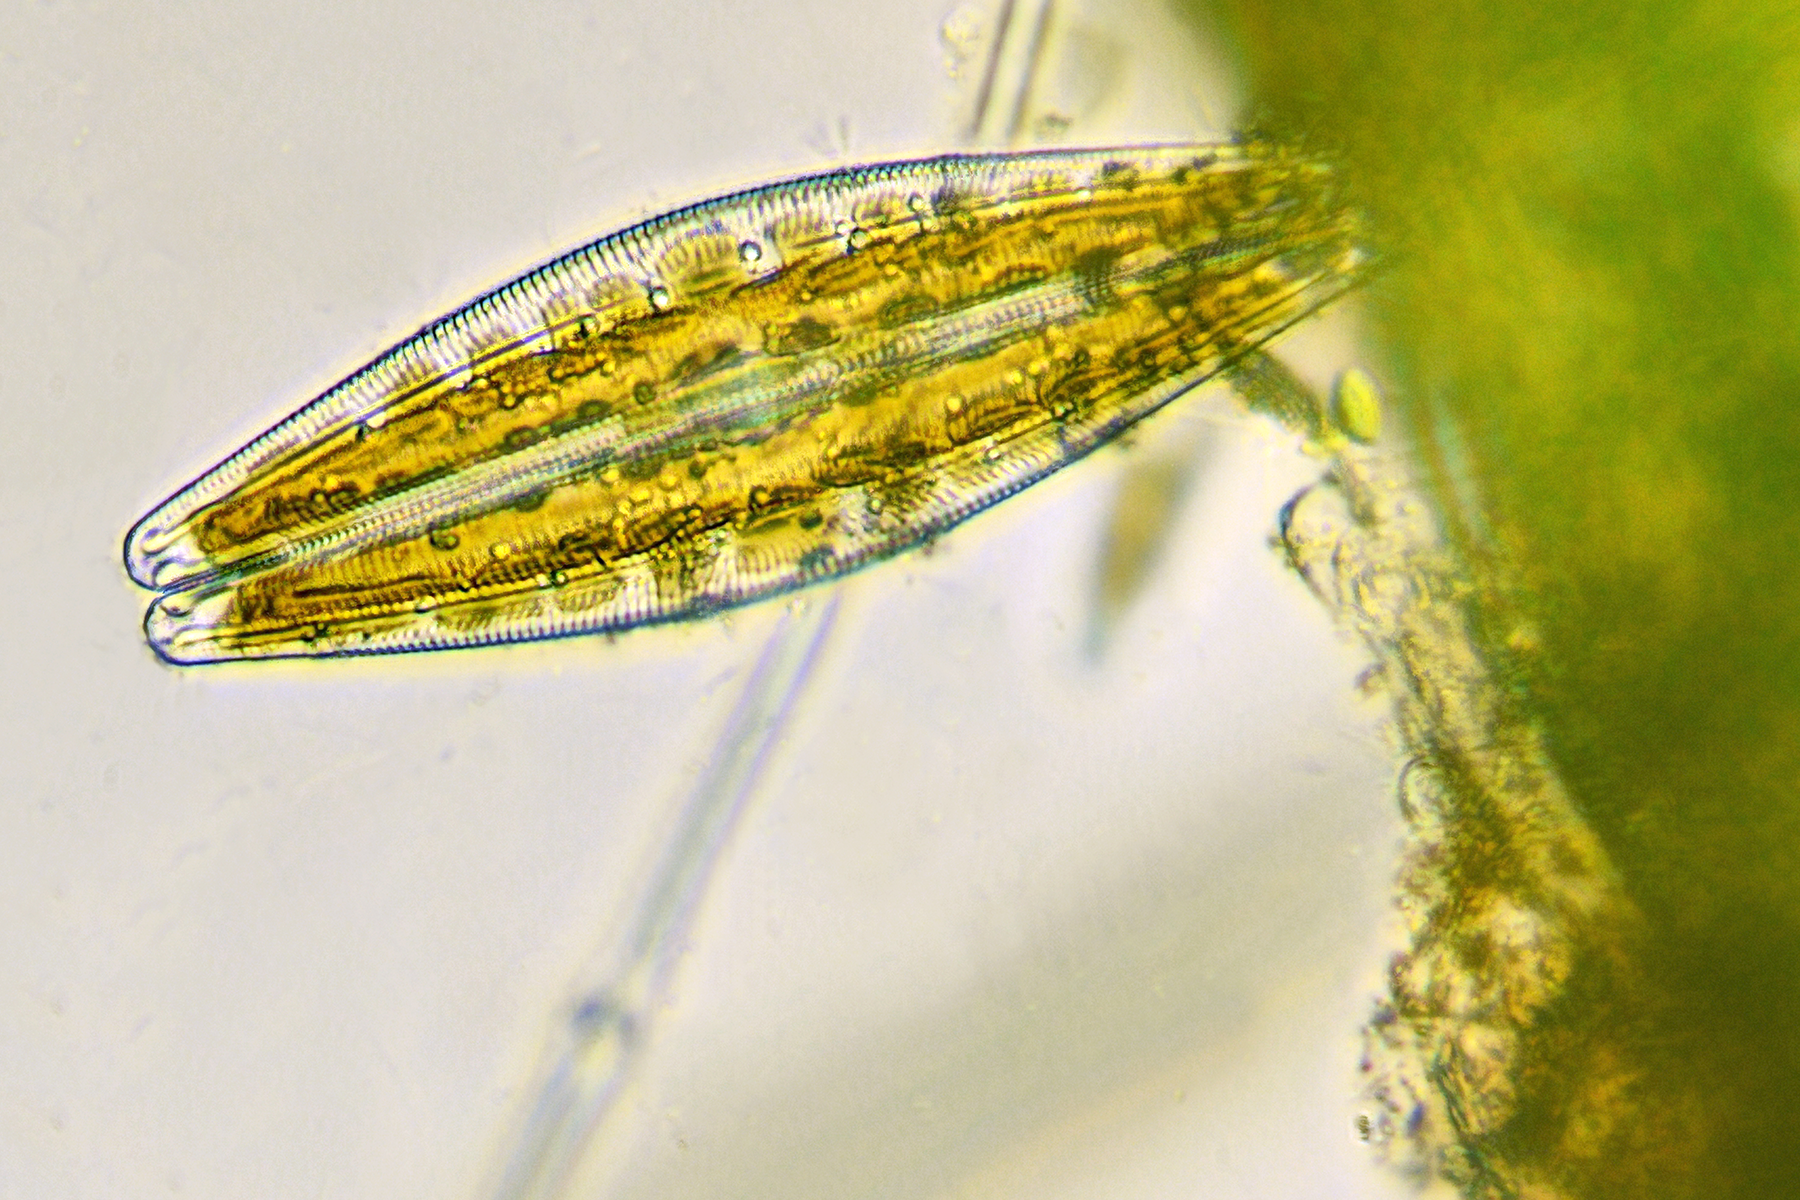 Researchers to explore the genetics of carbon-capturing algae